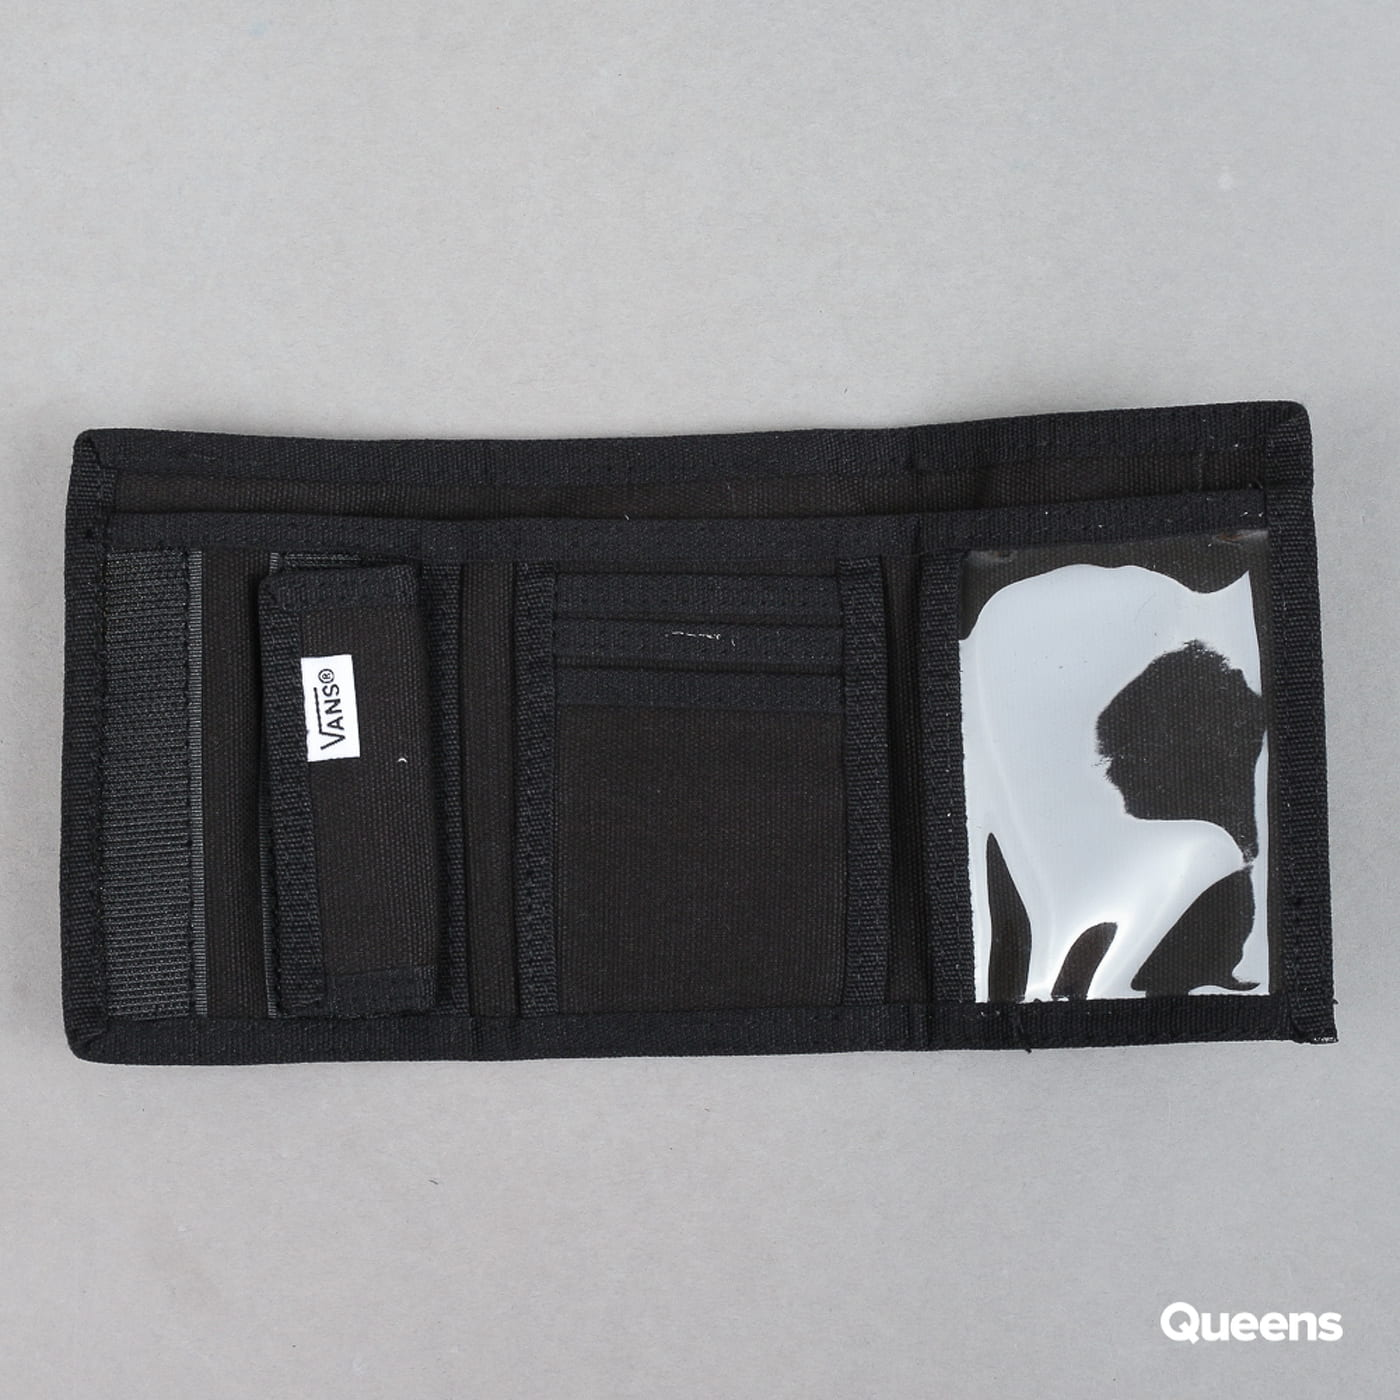 Vans Slipped Wallet black / dark gray